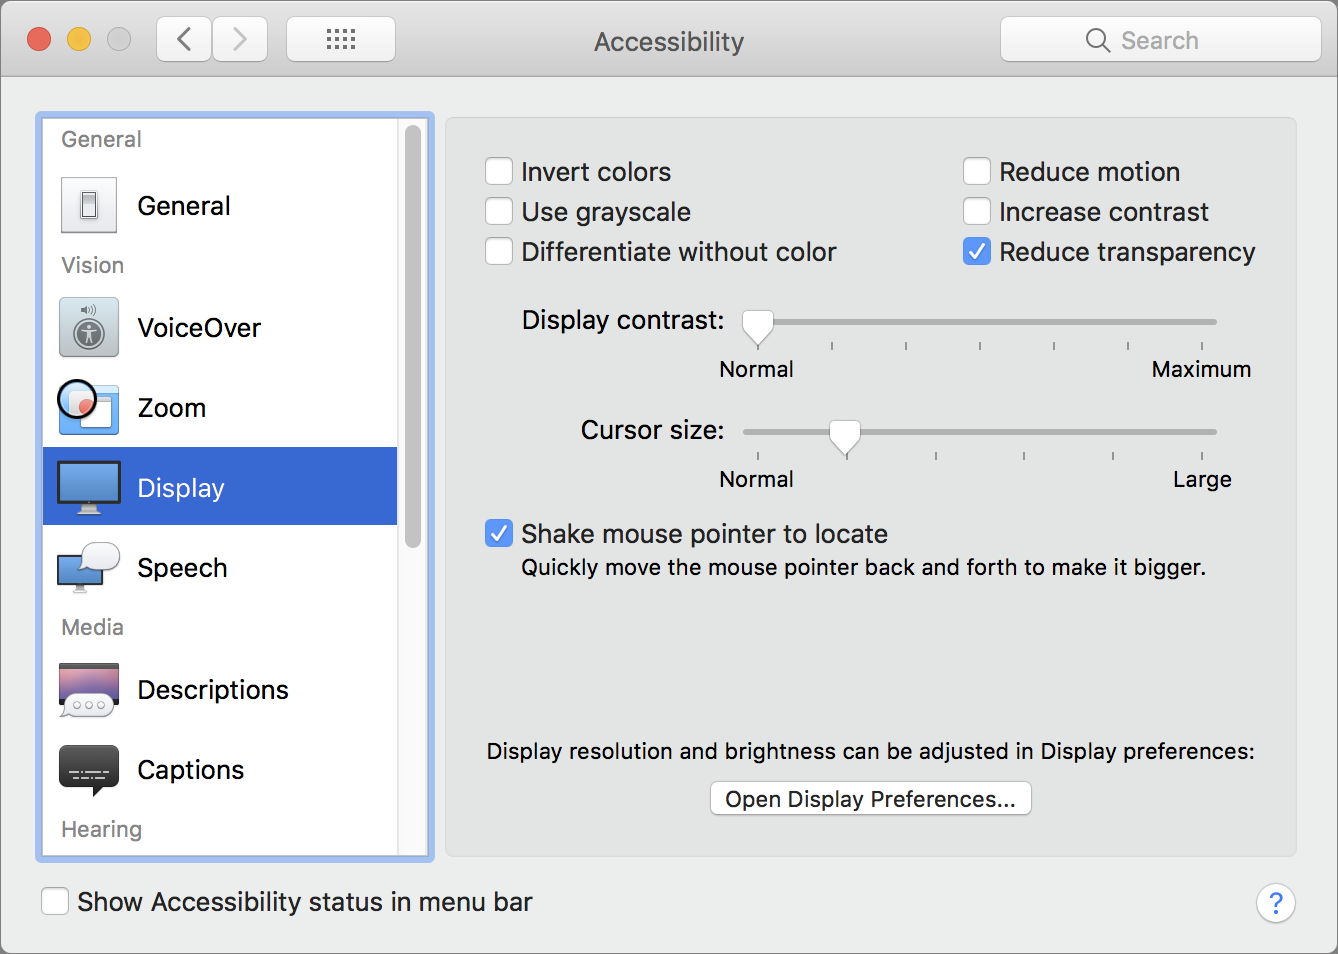 Browsing accessibility options